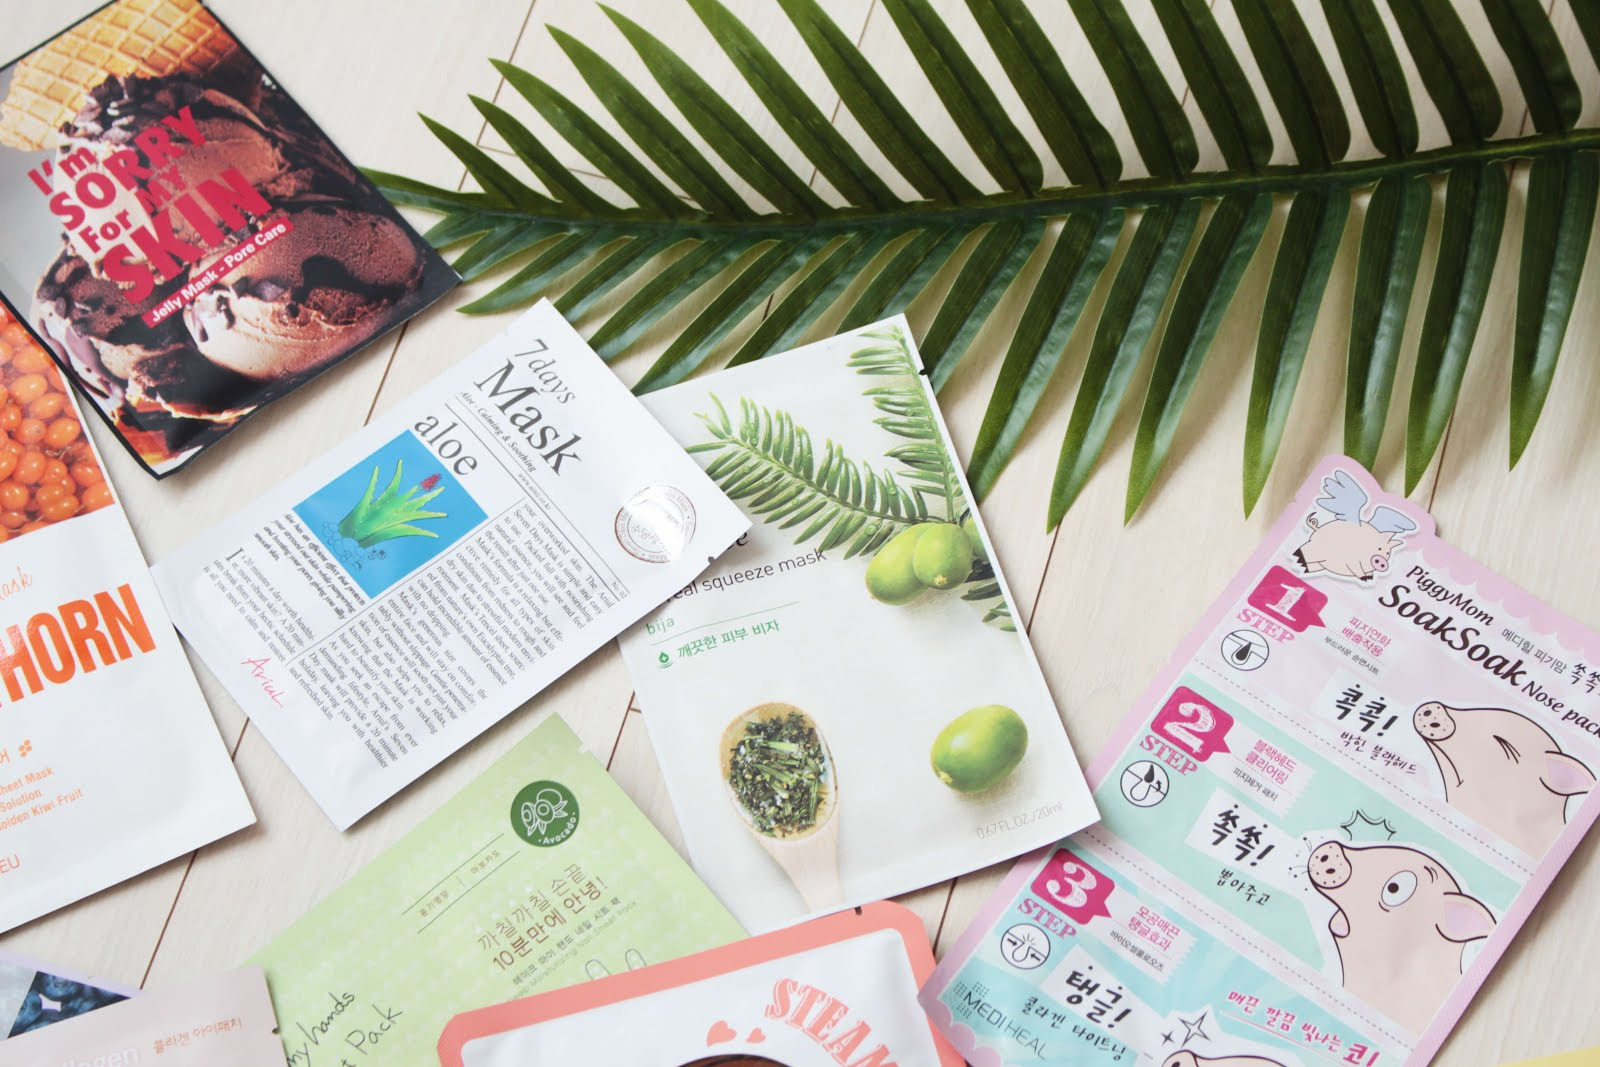 korean skincare blogger sheet masks kbeauty recommendations brands